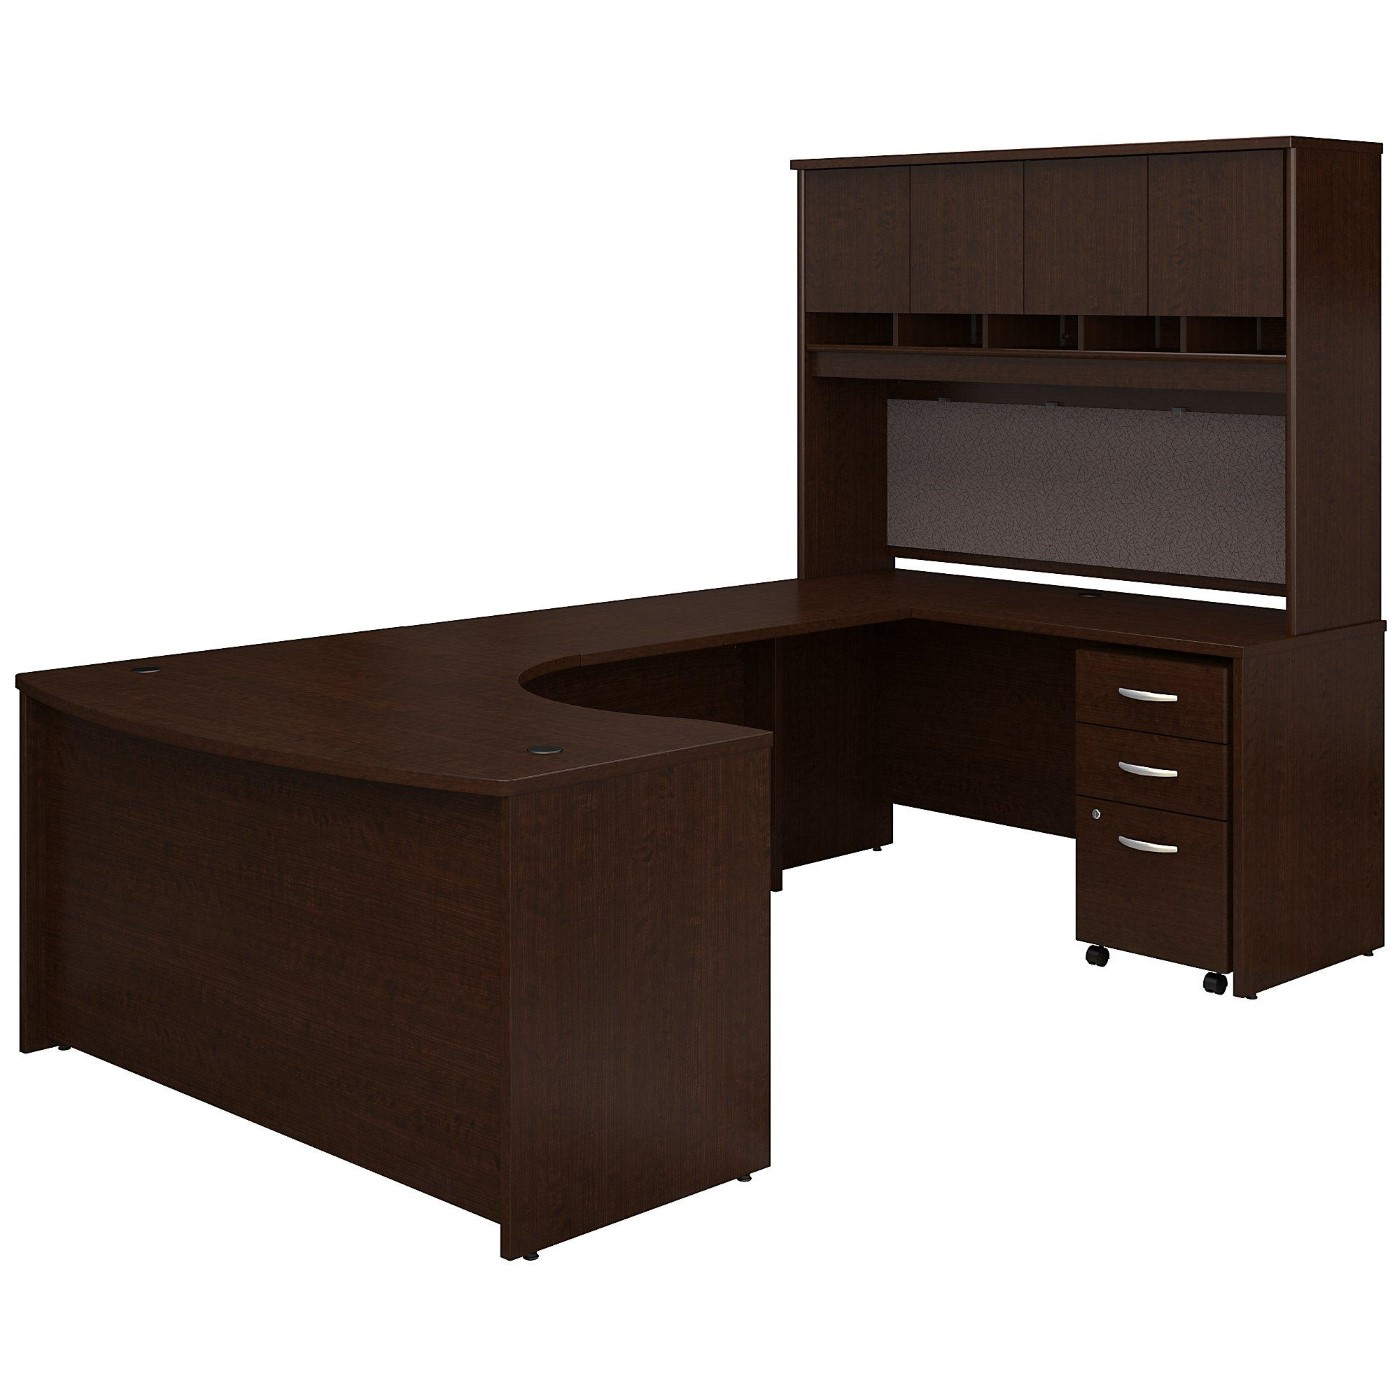 BUSH BUSINESS FURNITURE SERIES C 60W LEFT HANDED BOW FRONT U SHAPED DESK WITH HUTCH AND STORAGE. FREE SHIPPING</font></b></font>&#x1F384<font color=red><b>ERGONOMICHOME HOLIDAY SALE - ENDS DEC. 17, 2019</b></font>&#x1F384